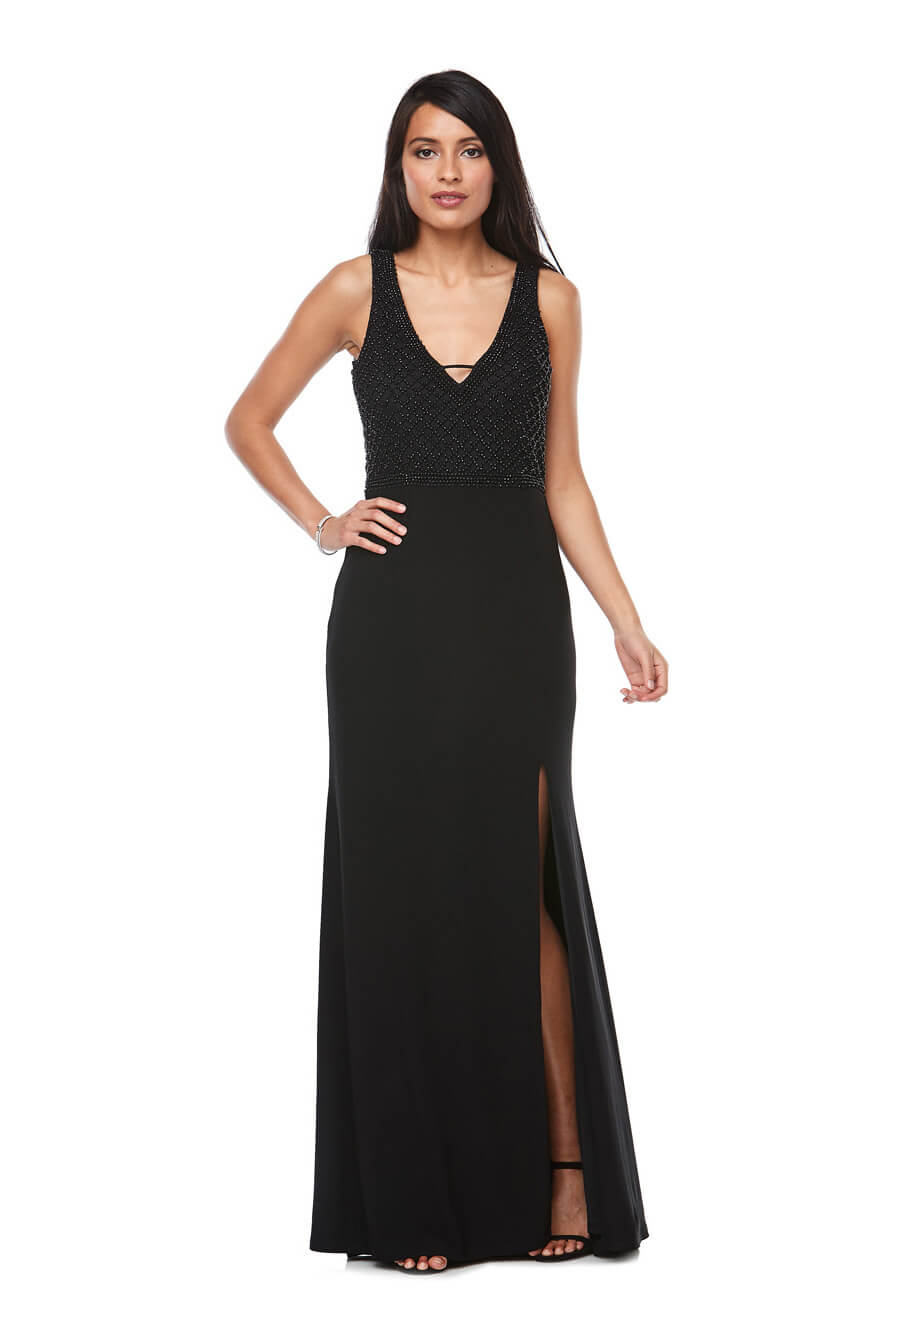 Long V neck side split stretch jersey gown with beaded bodice detail